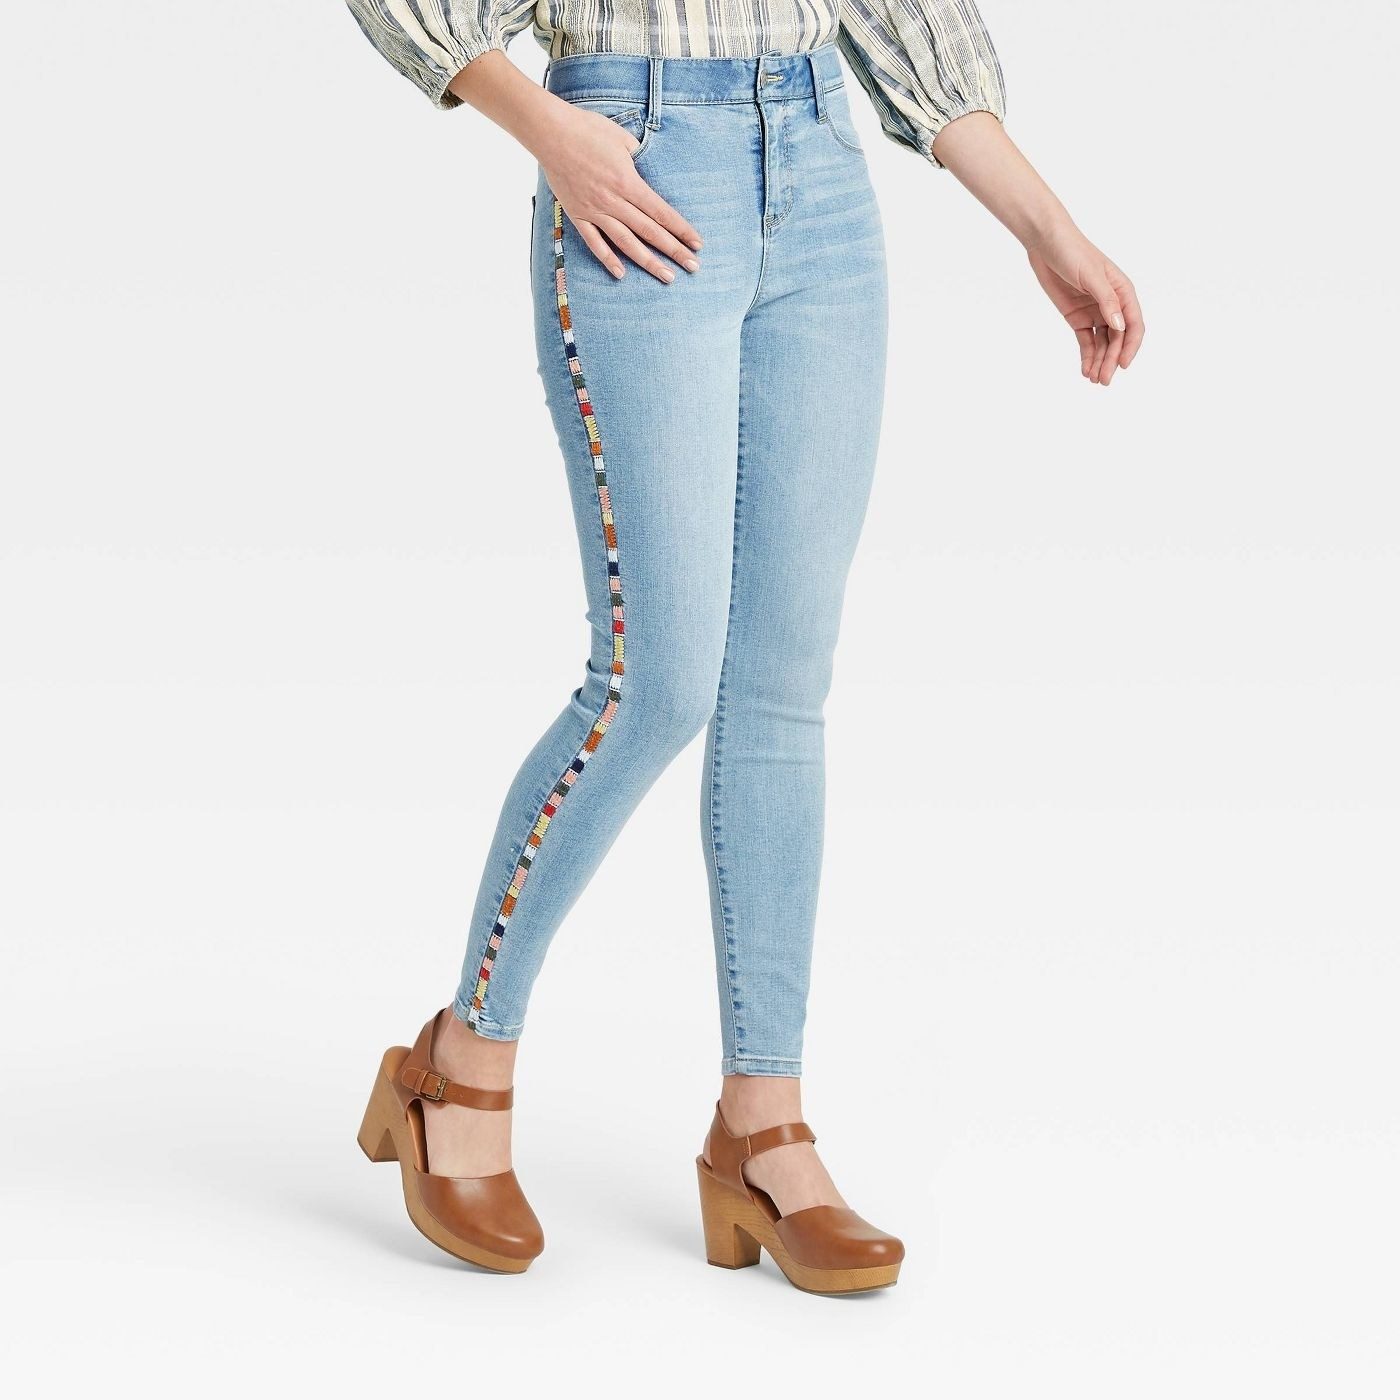 The jeans paired with brown clogs